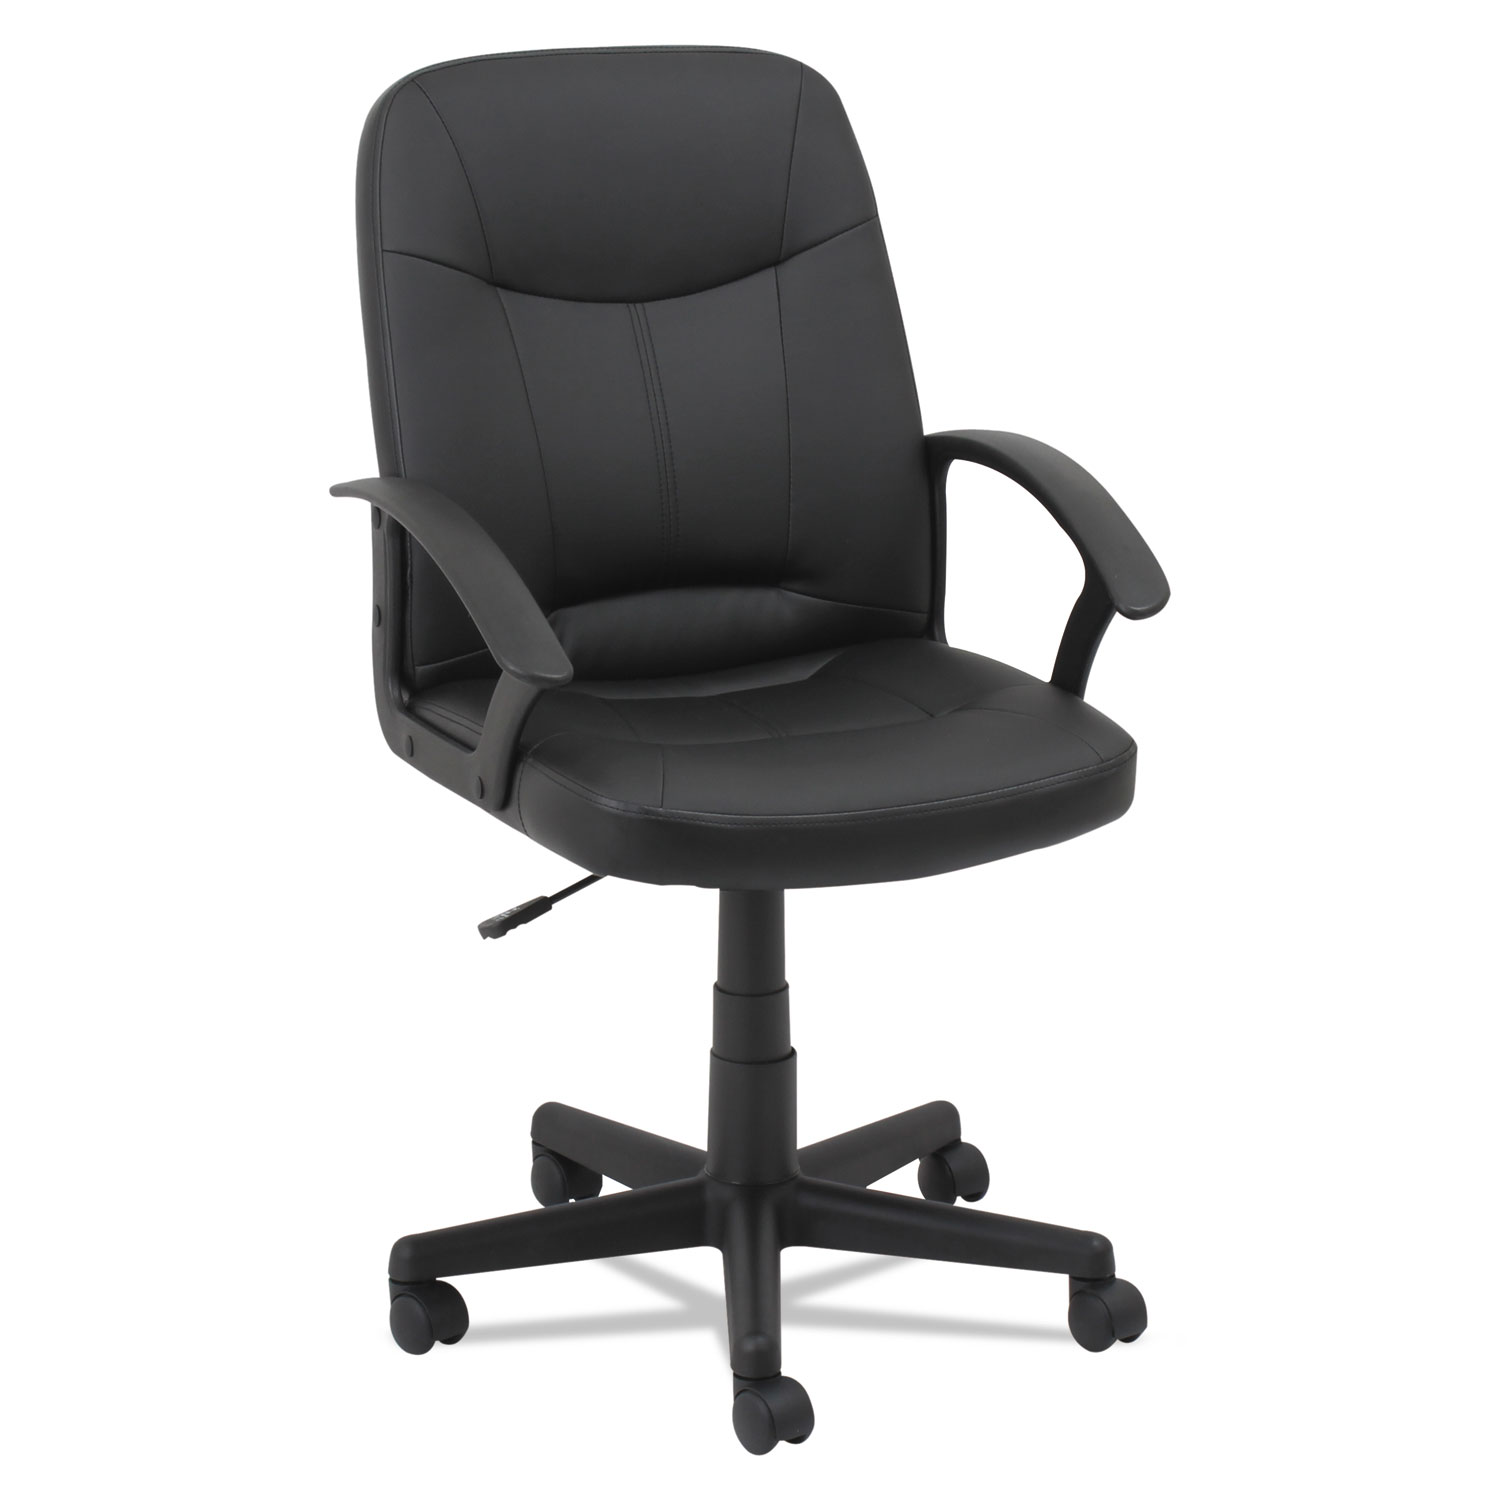 Executive fice Chair by OIF OIFLB4219 TimeSupplies